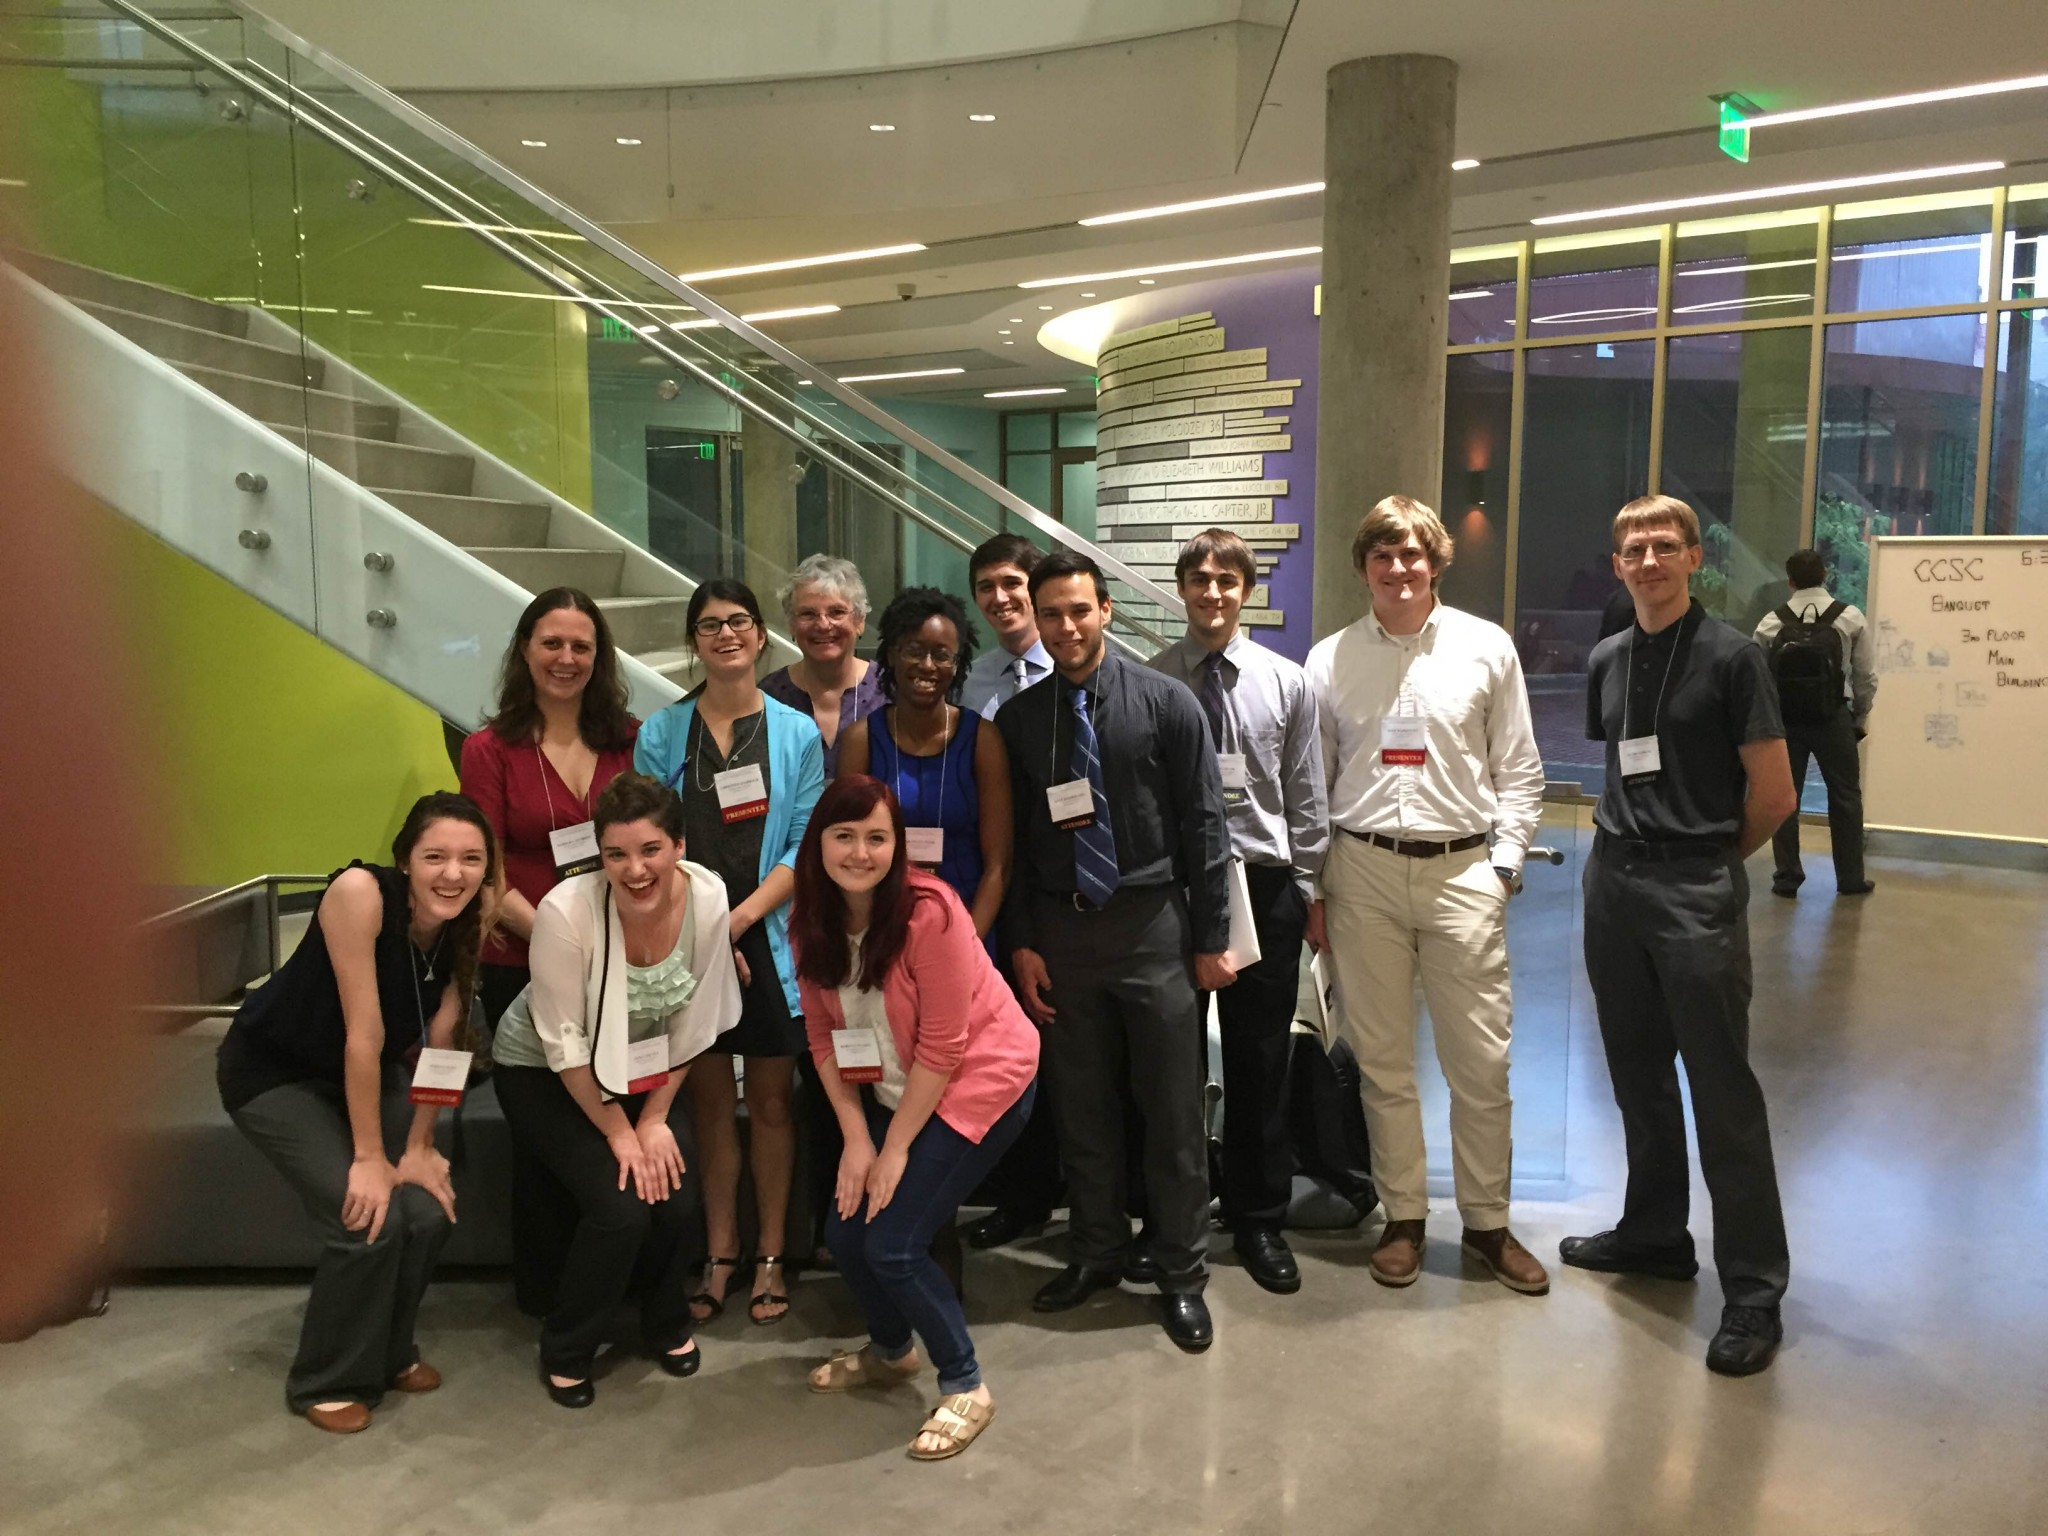 CCSC 2015 attendees from SU